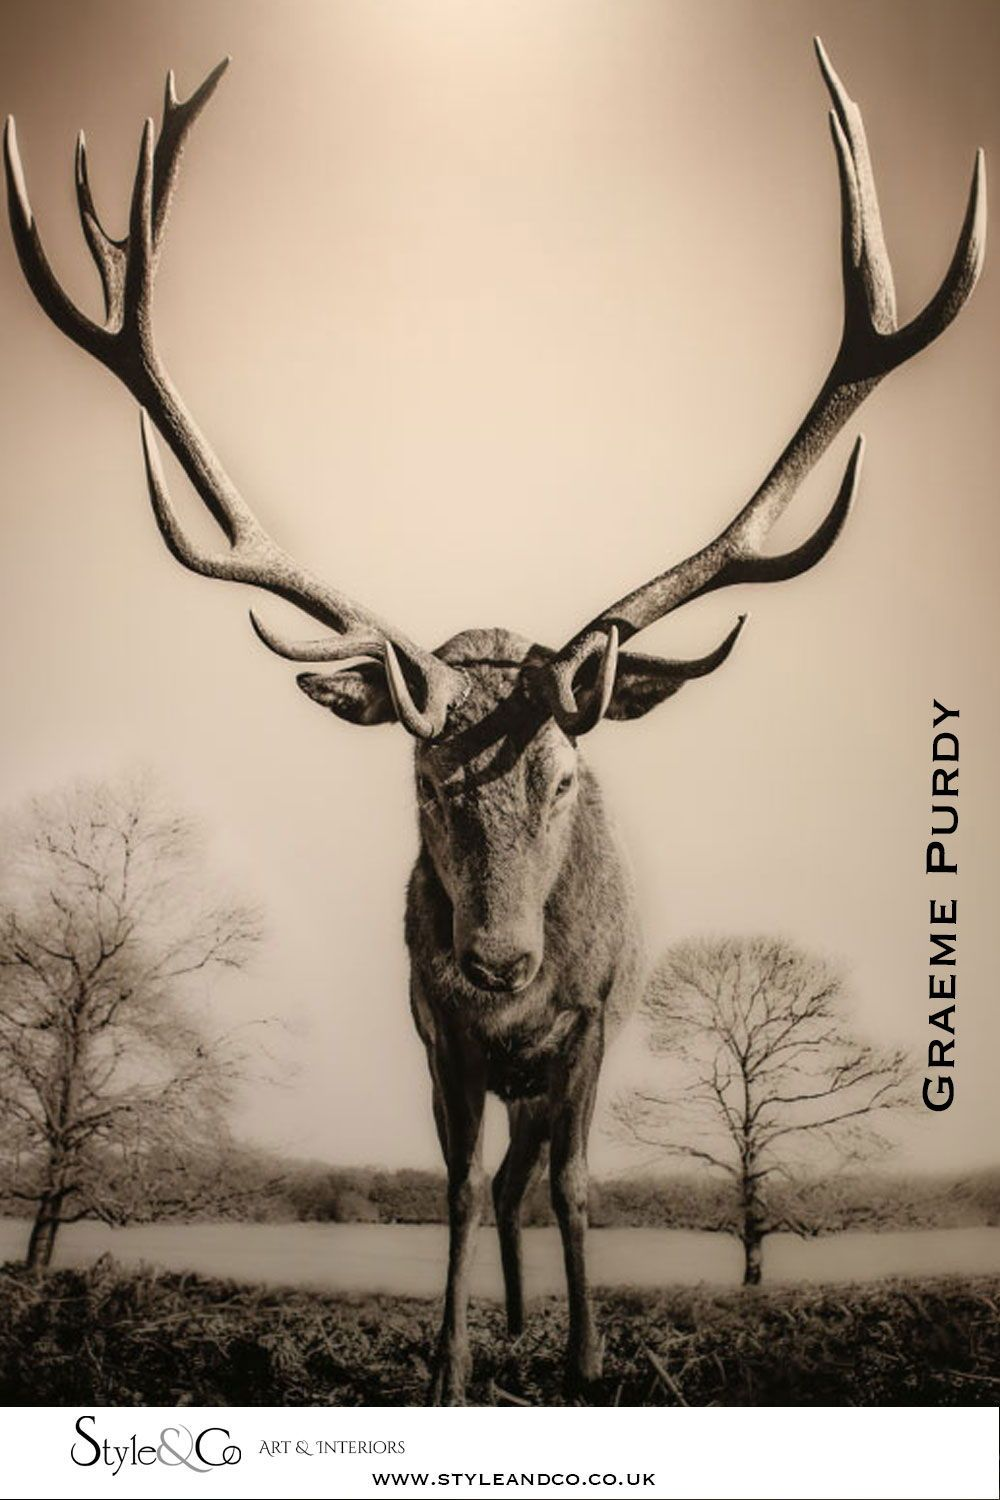 See photography by Graeme Purdy  and many other great artists at the London Art Fair.  Visit the Blog at www.styleandco.co.uk/london-art-fair  #fineart #photography #animal #prints #contemporaryart #art #londonartfair #styleandco #stag #homedecor